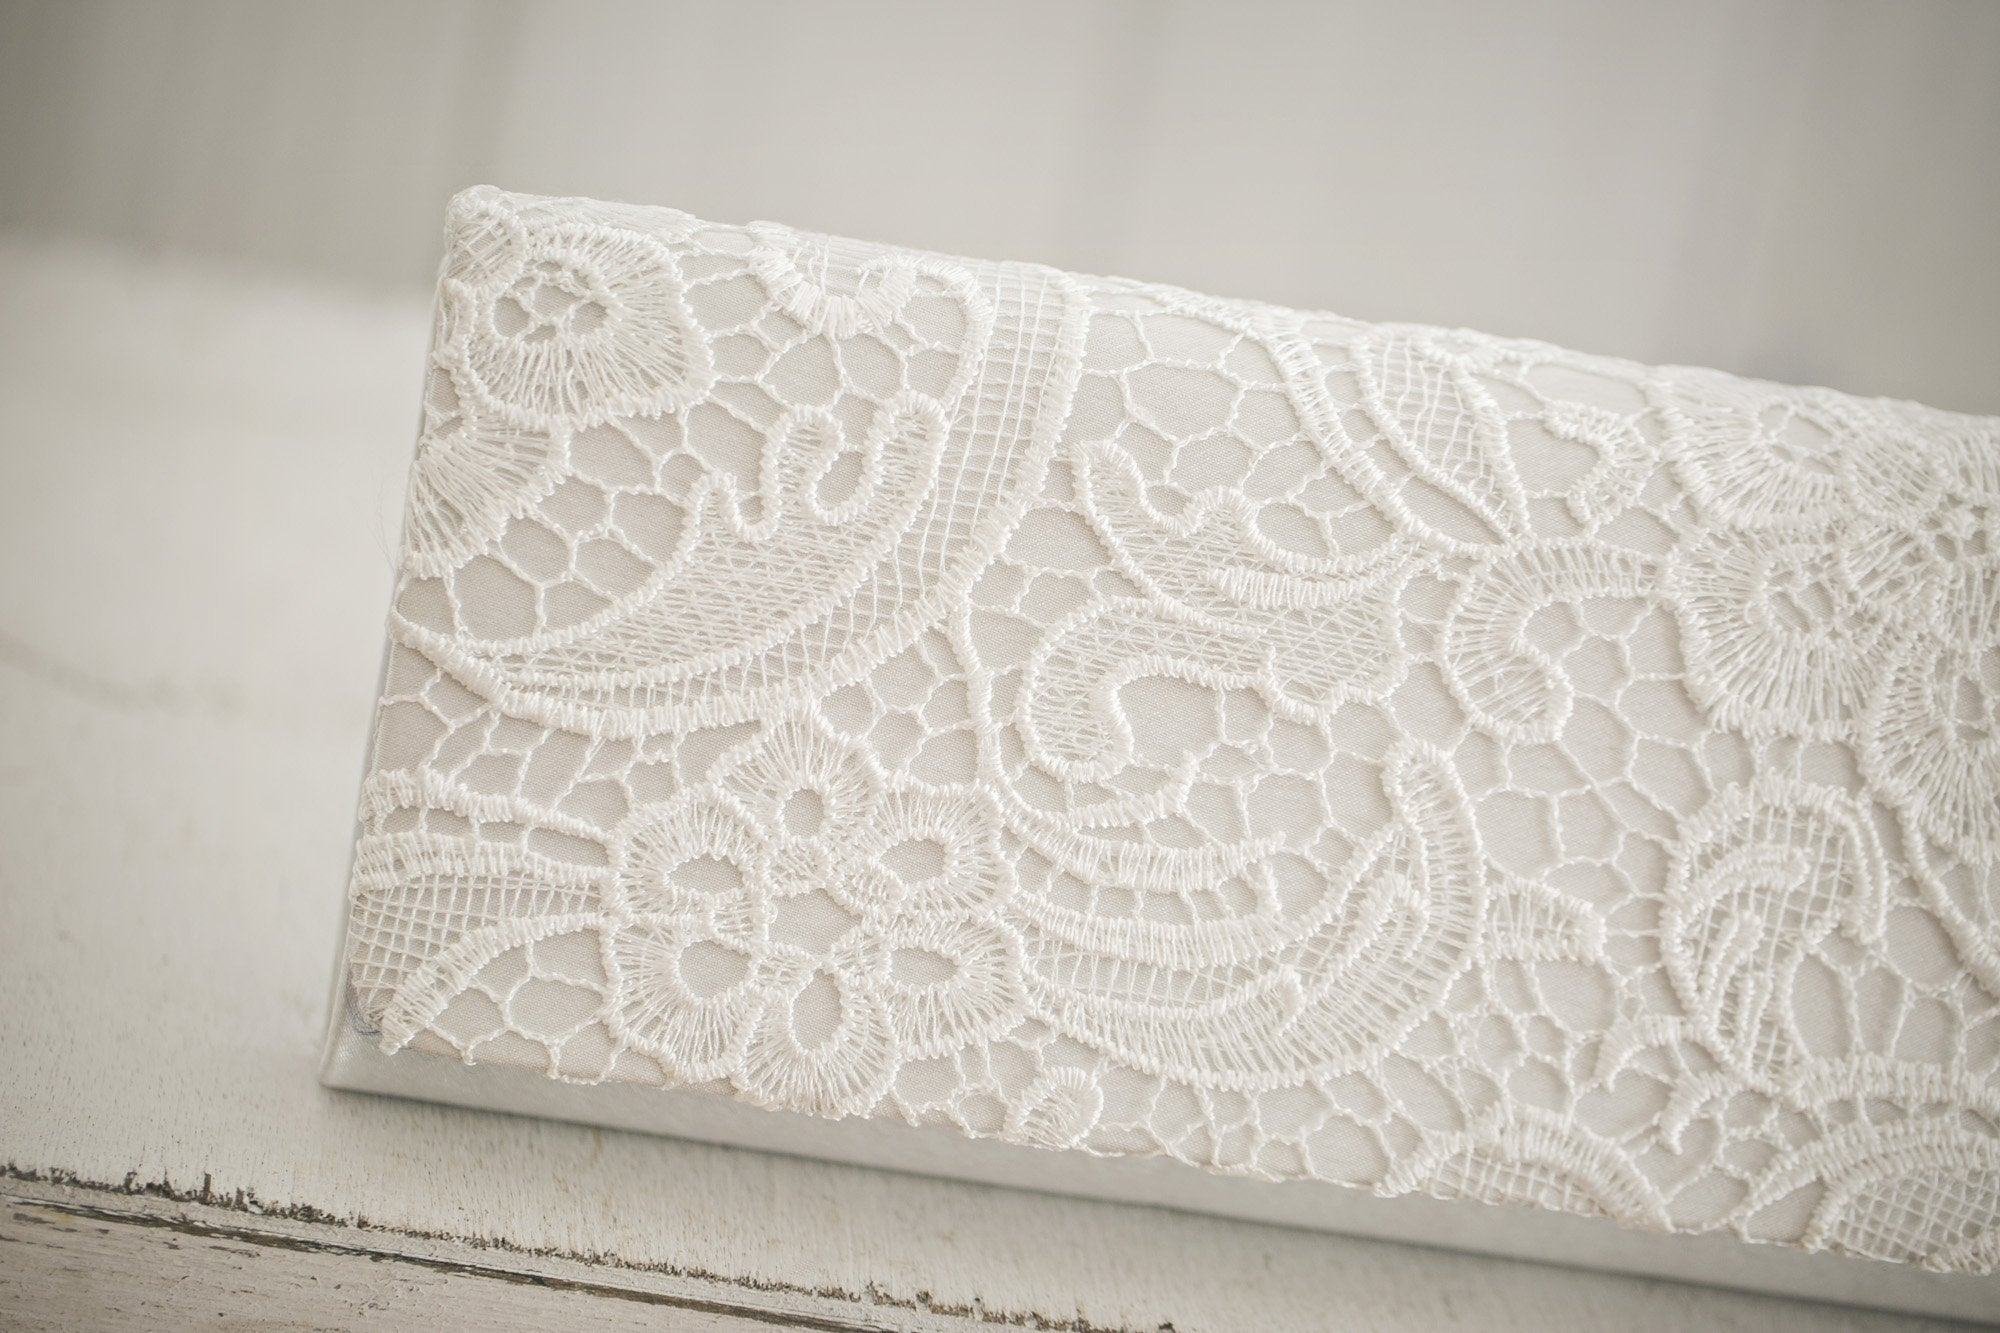 Embroidered Lace Clutch - Violet and Eve